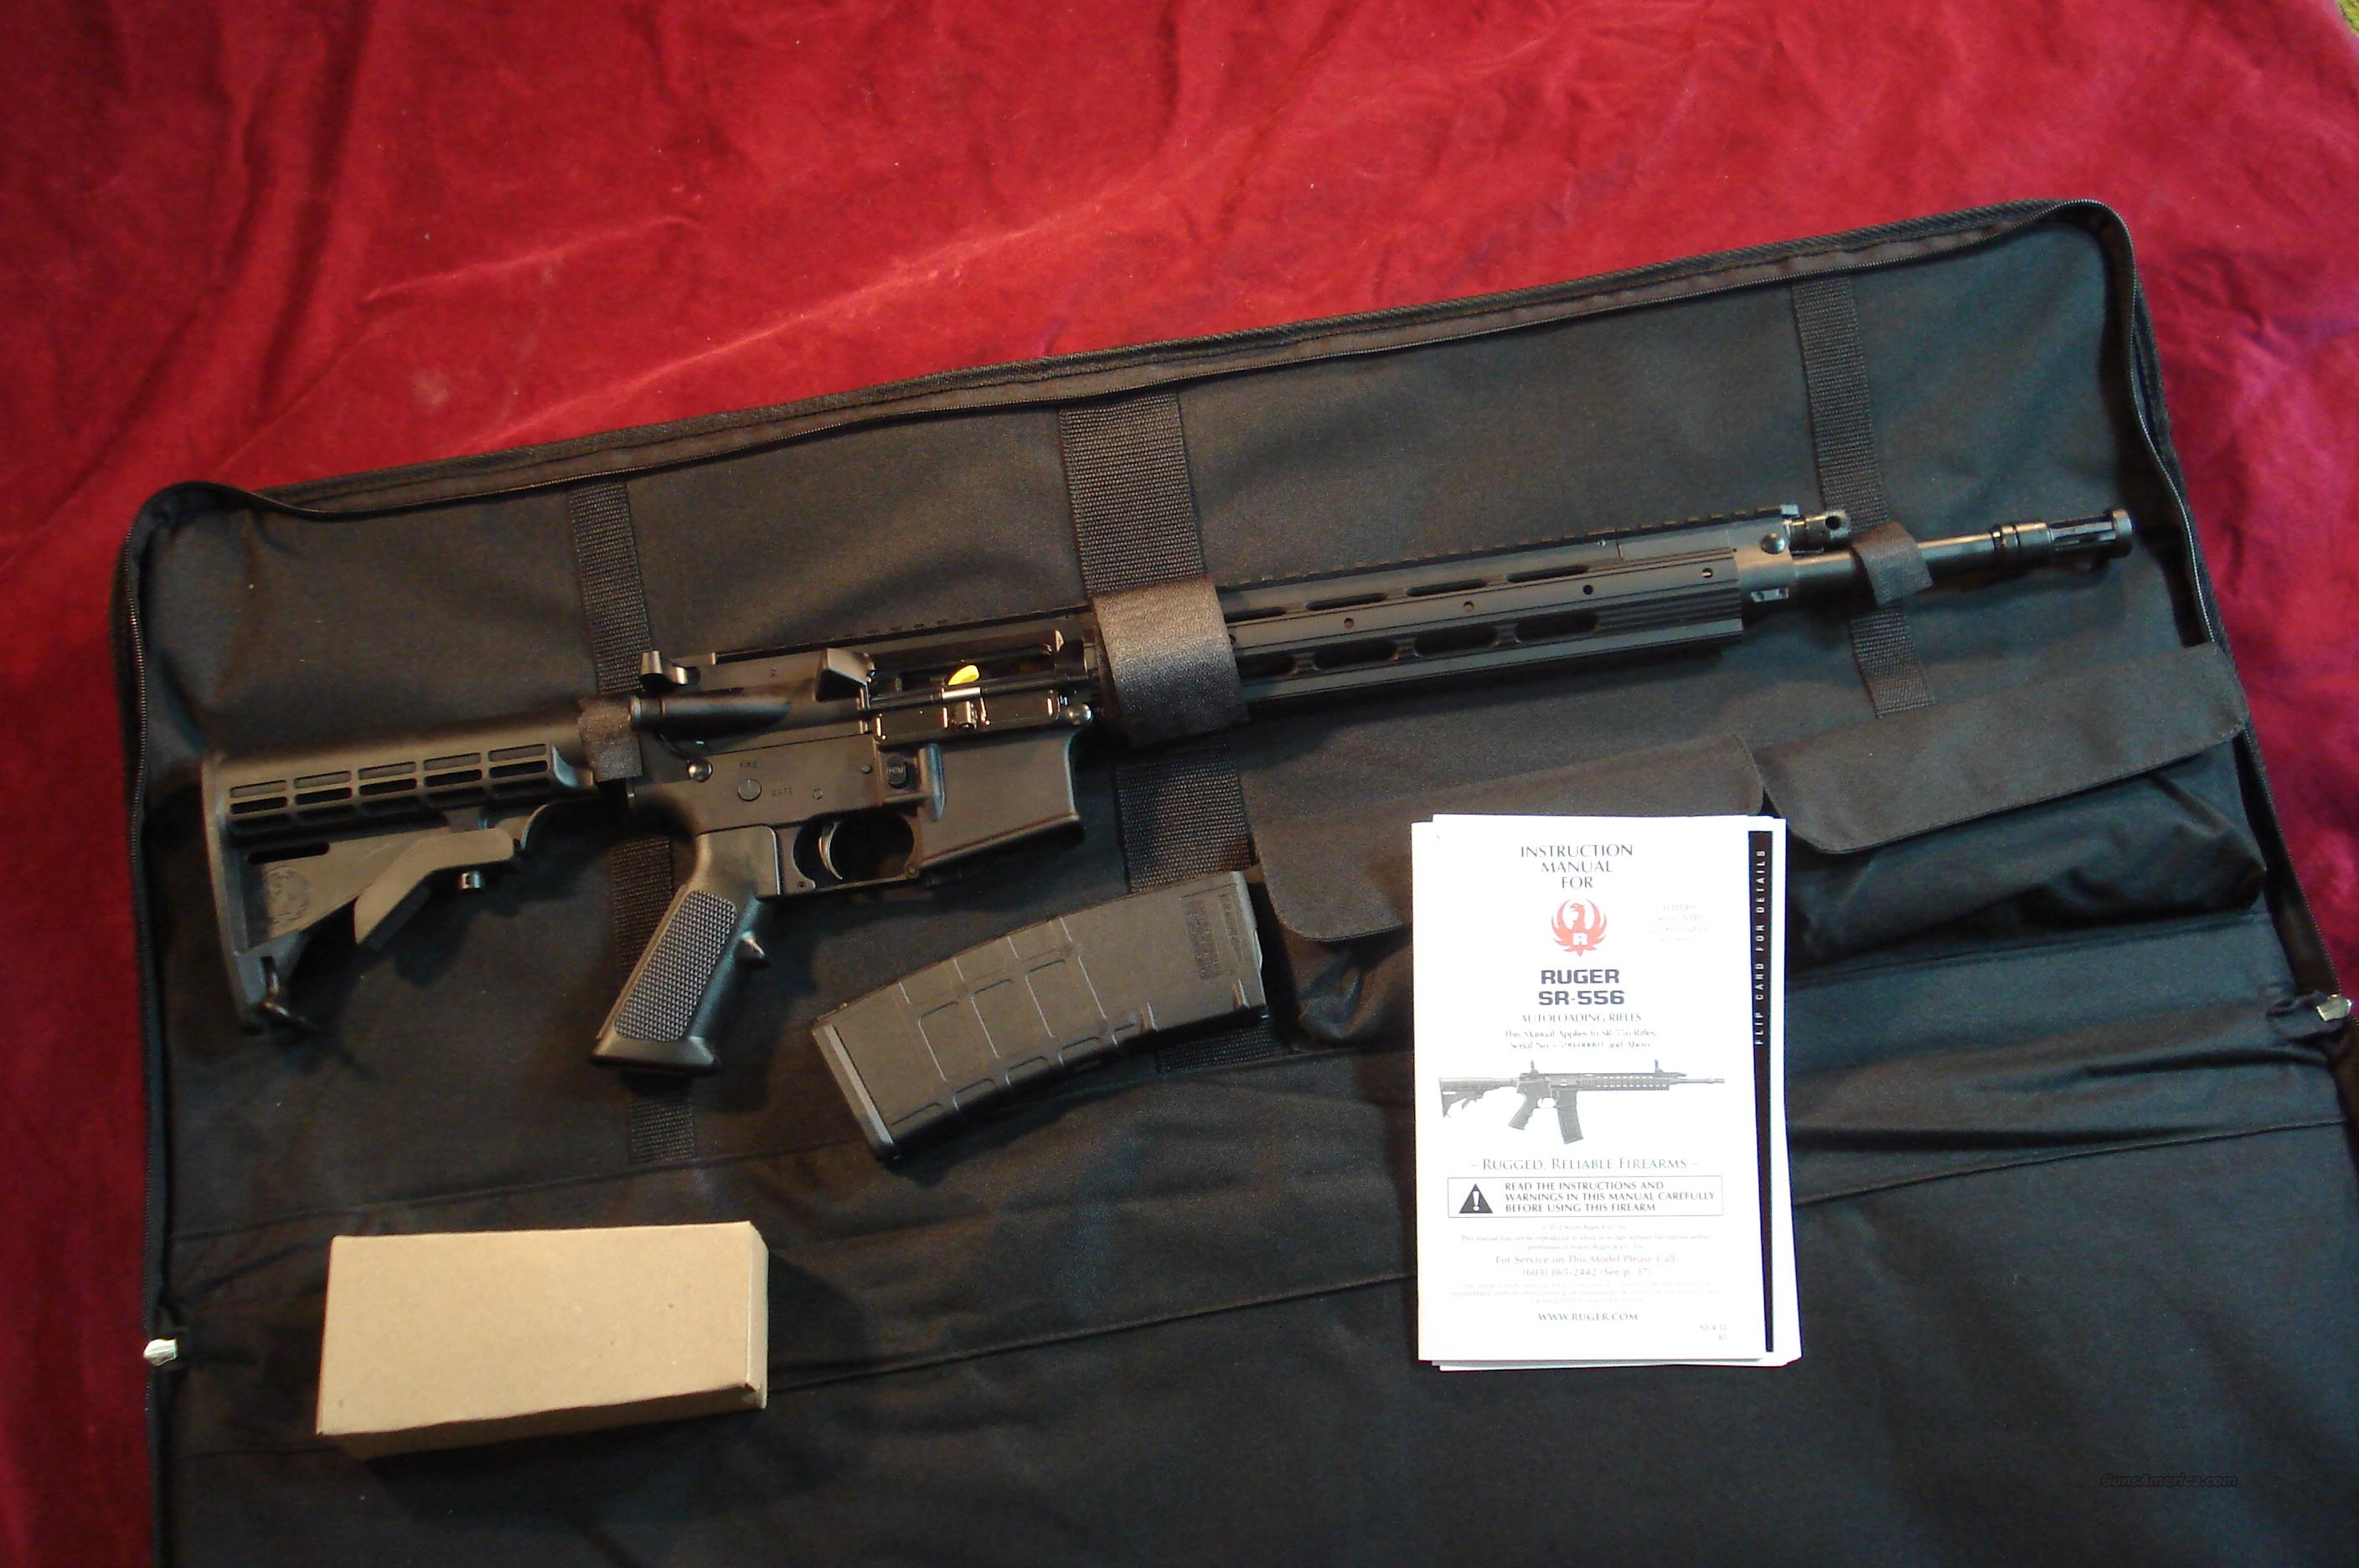 RUGER SR-556 GAS PISTON AR STYLE RIFLE NEW  Guns > Rifles > Ruger Rifles > SR-556